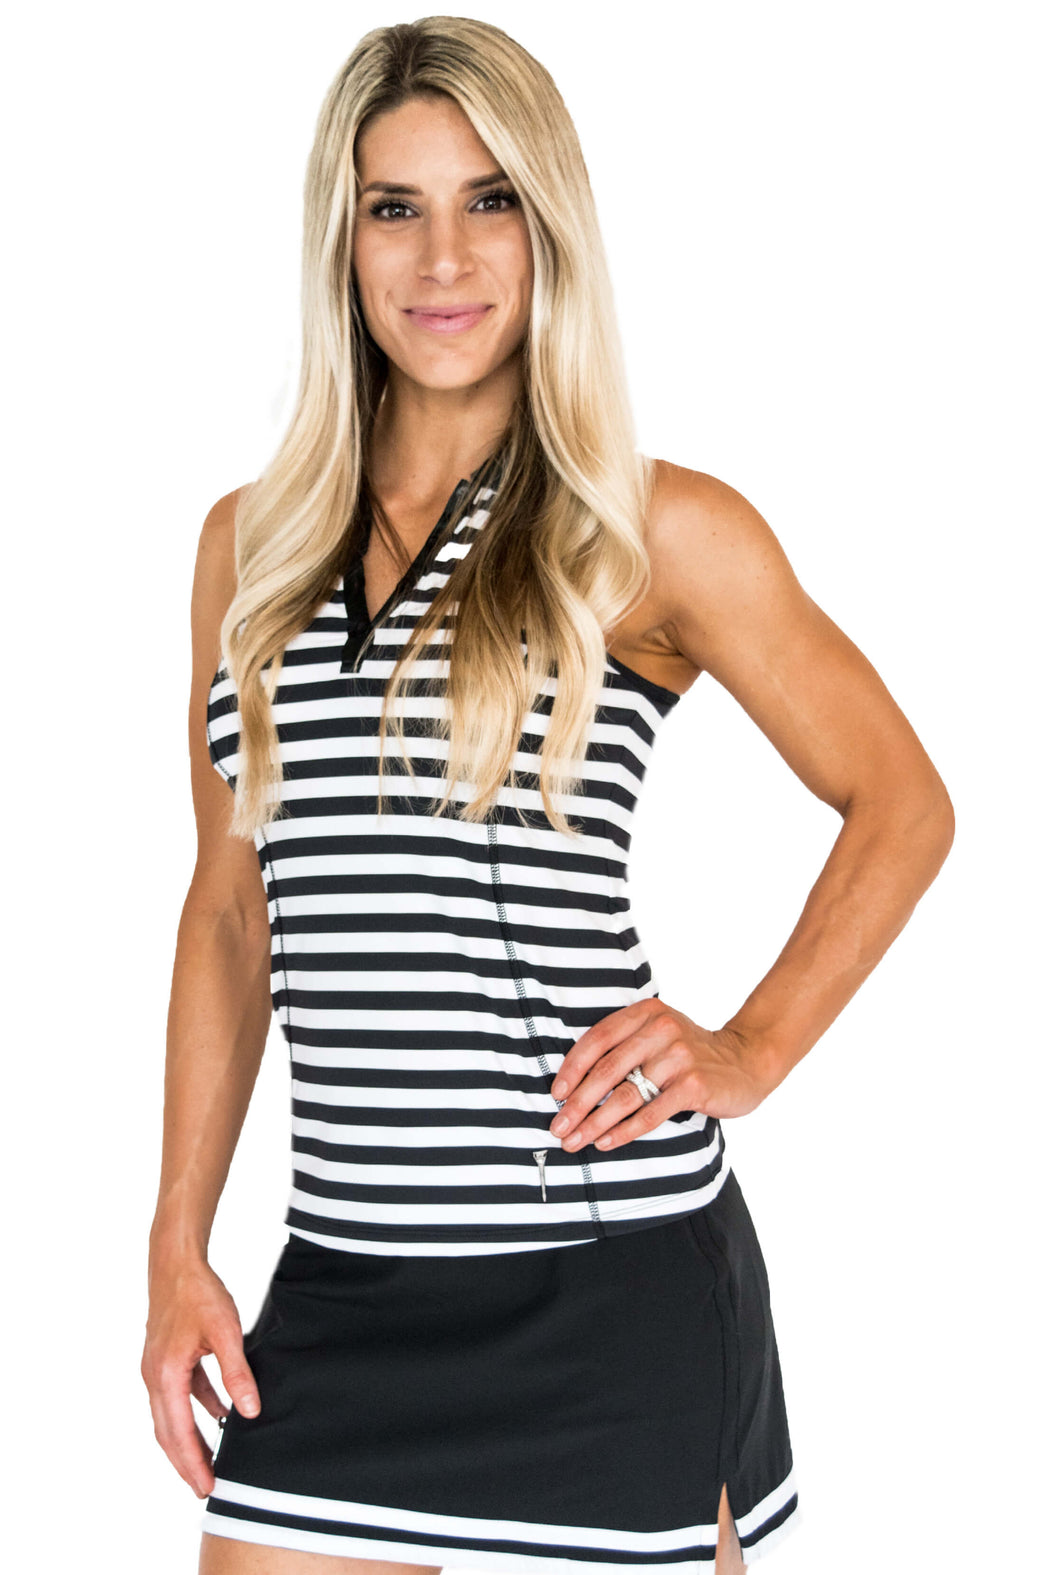 NEW! Limited Edition! Embroidered Racerback Golf Polo - Stripes - FlirTee Golf